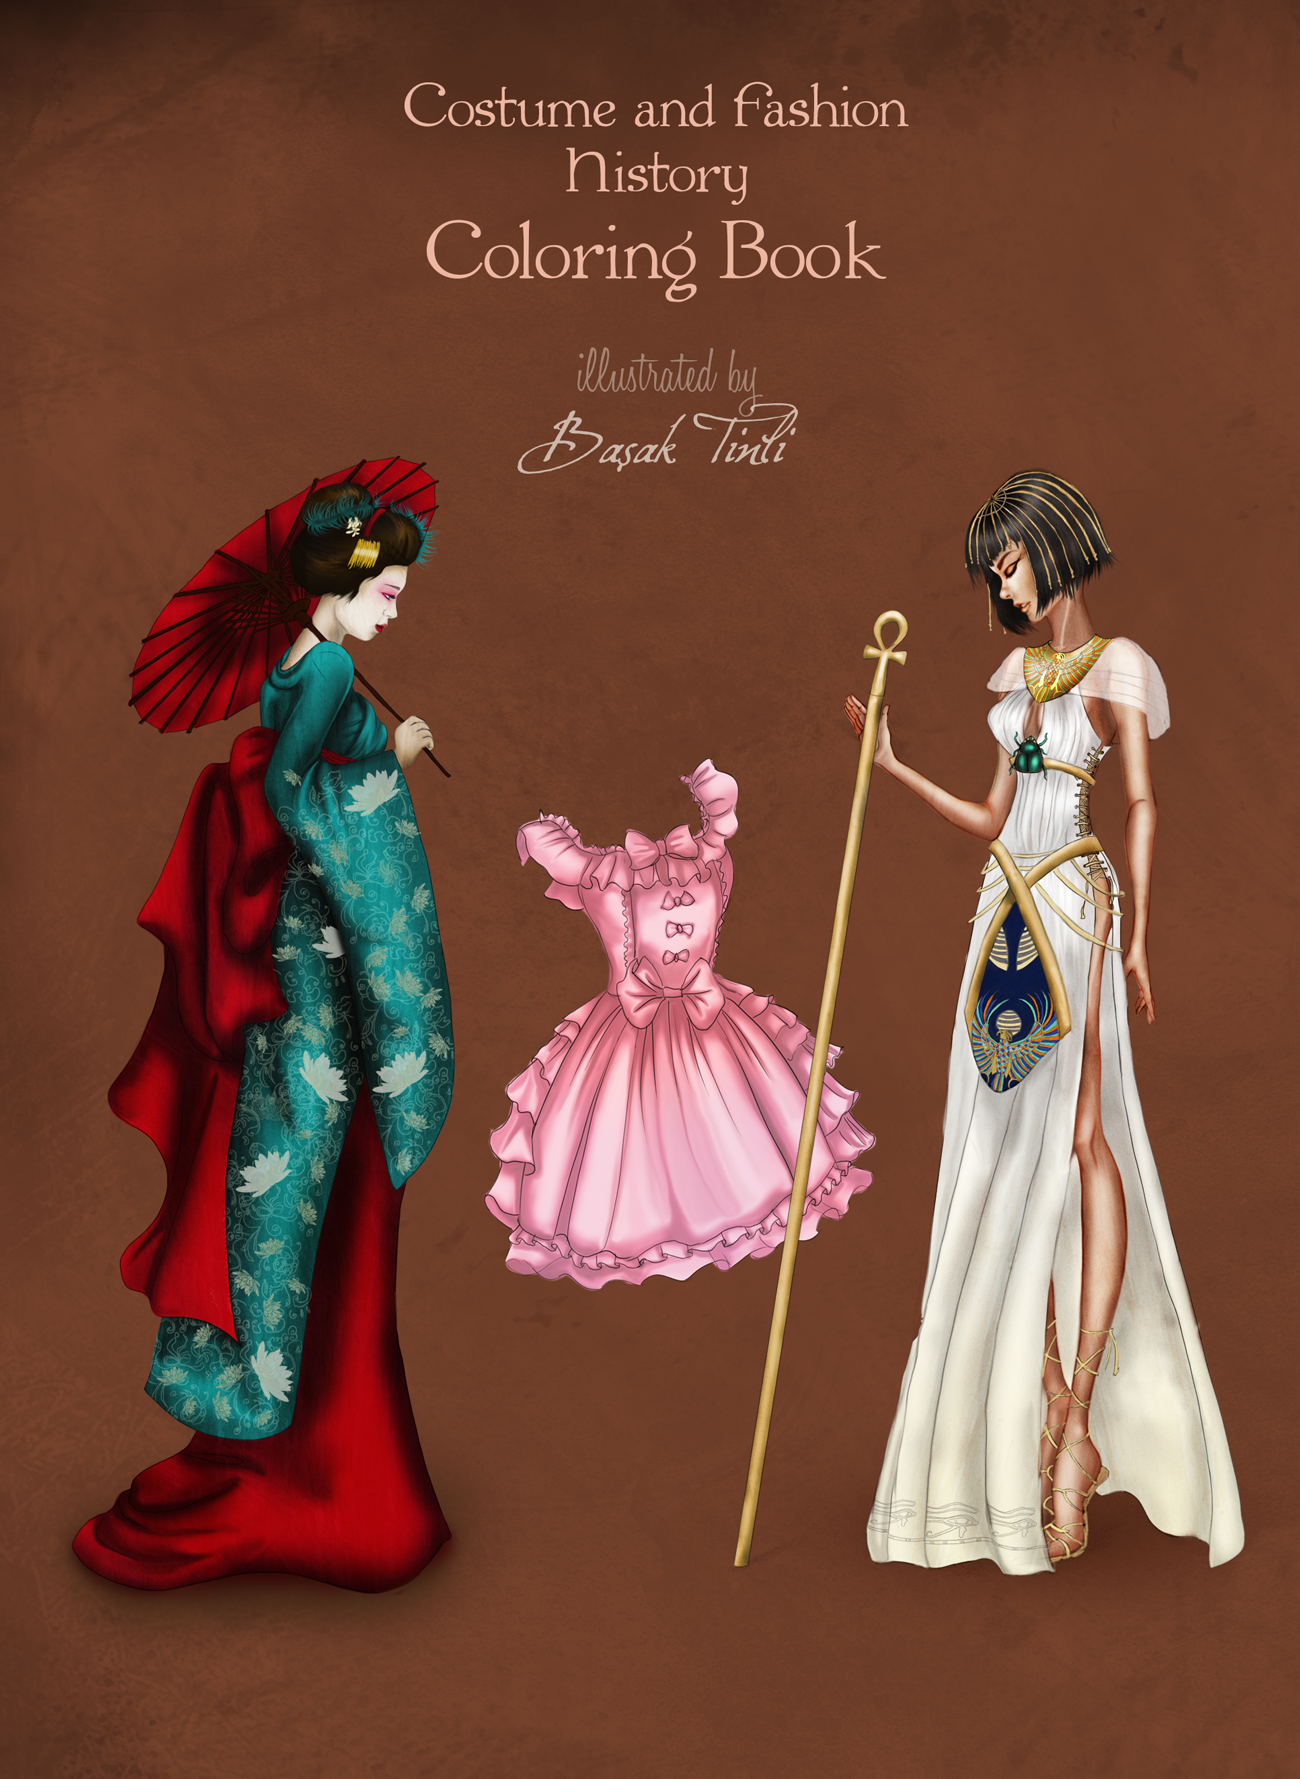 ... Back Cover  costume and fashion coloring book by BasakTinli & Back Cover : costume and fashion coloring book by BasakTinli on ...